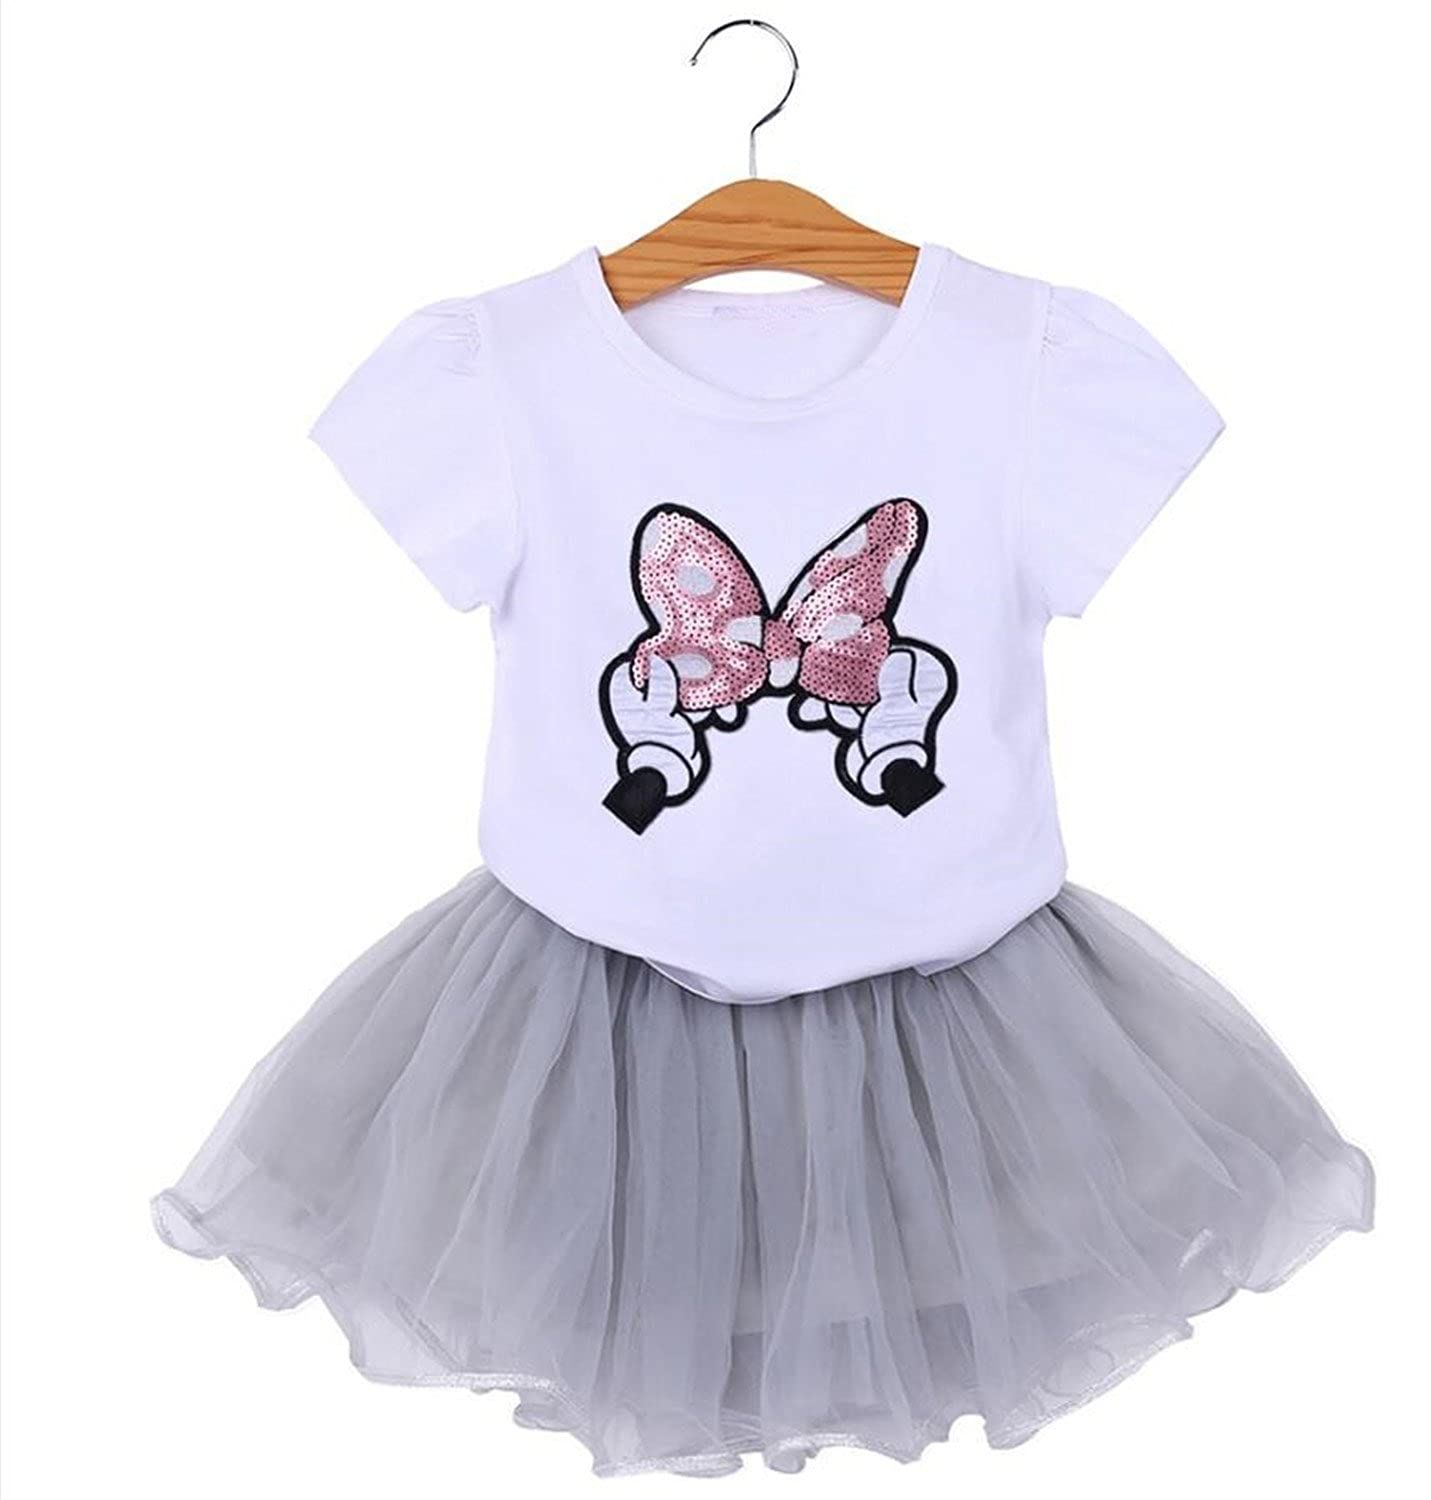 Nerefy Girls Skirt Tracksuits Cartoon Unicorn Short Top Clothes Sets Outfits